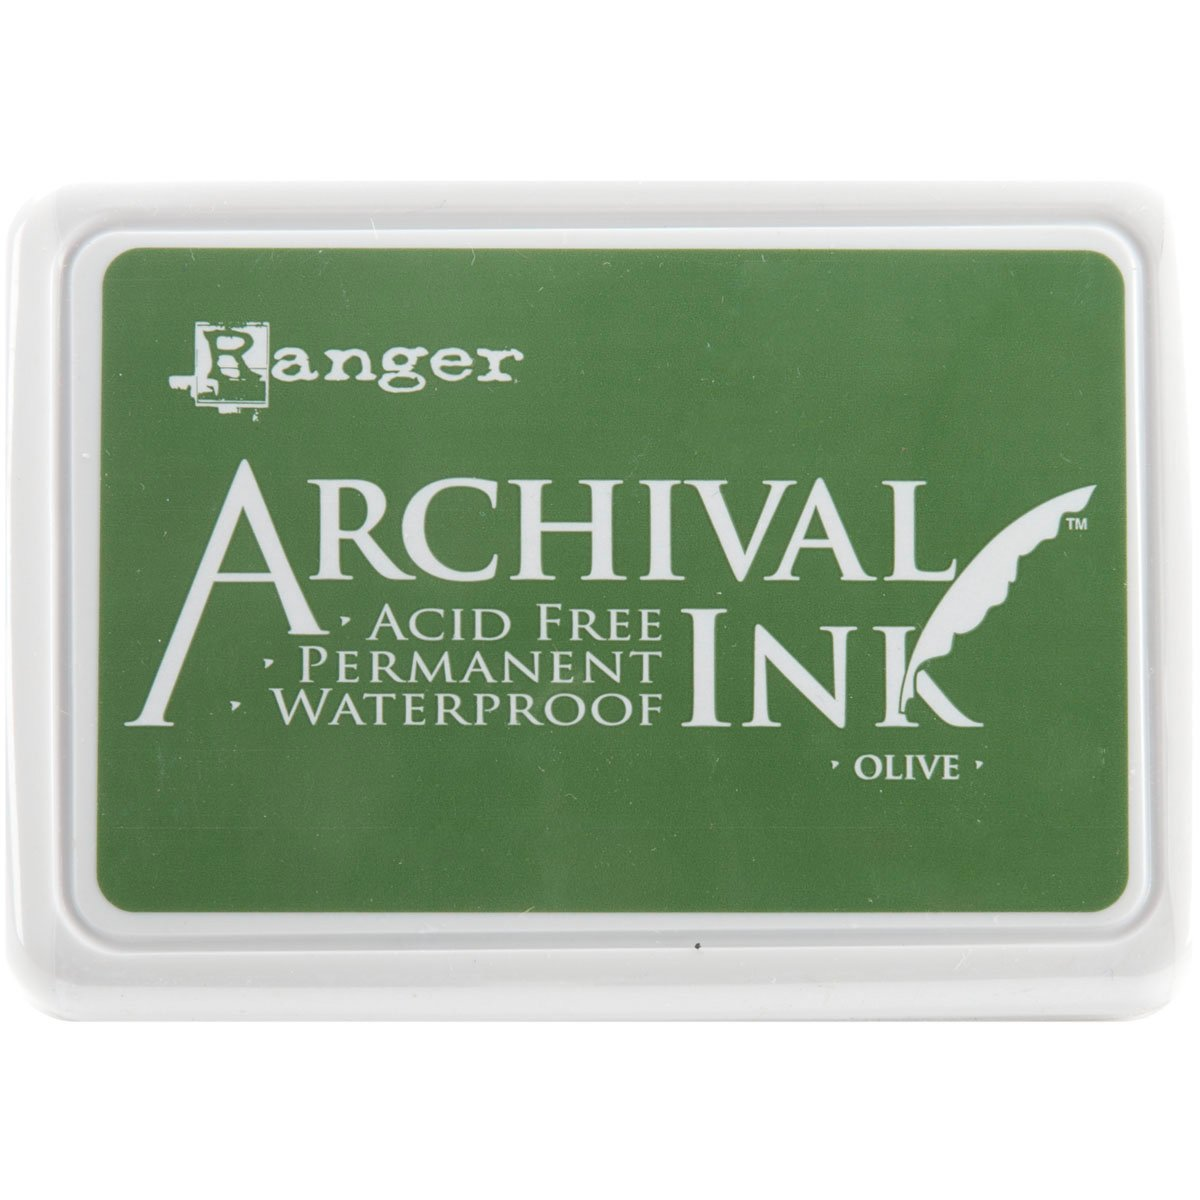 Ranger Archival Jet Black Permanent Dye Ink Stamp Pad & Re-Inker Refill 4336989874